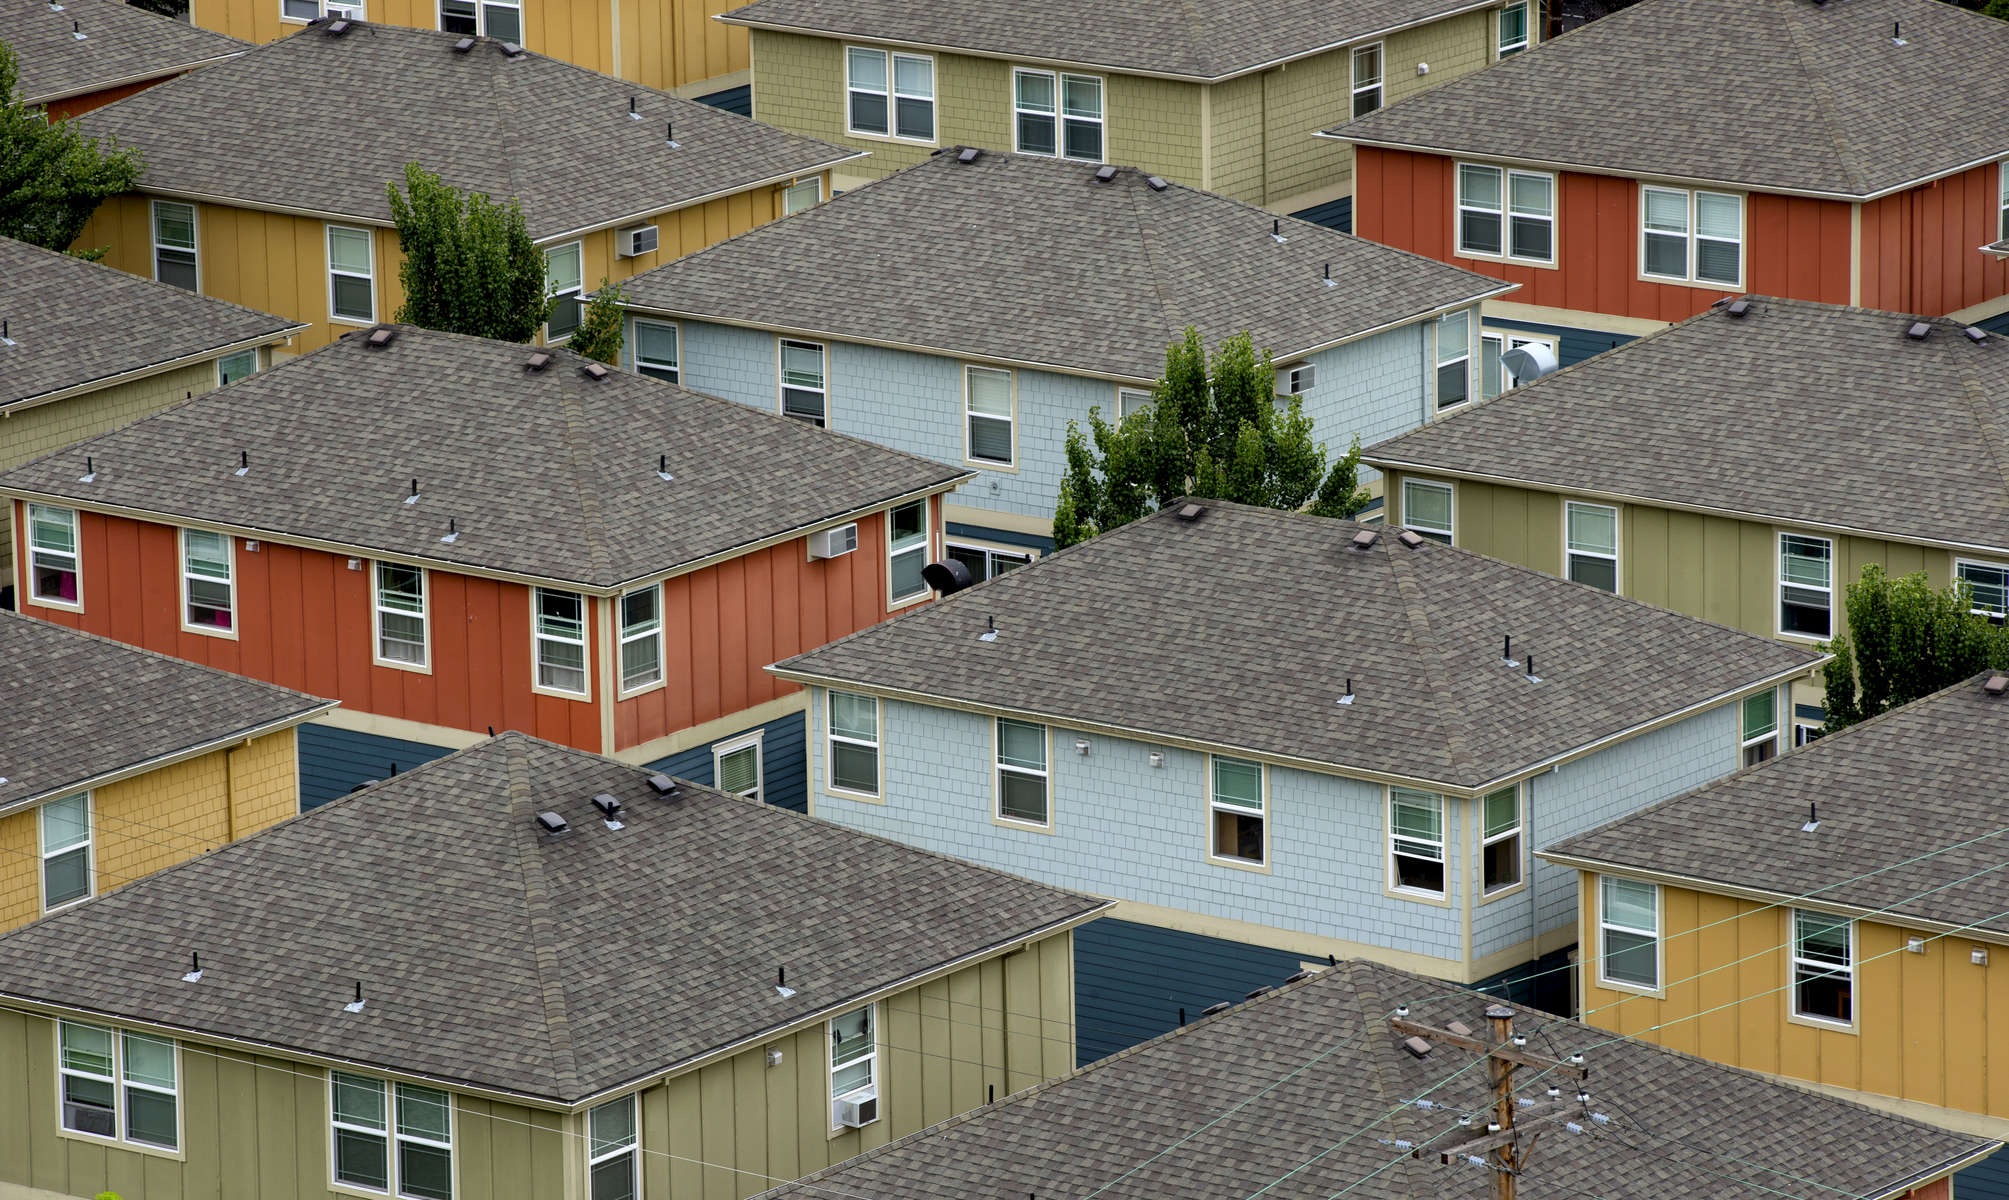 Views from above can lend a fresh perspective to every day views. This cluster of houses becomes a study of color and symmetry when viewed from above. This photo was taken from atop the St. Johns Bridge in Portland, August 1, 2015. Kristyna Wentz-Graff / Staff